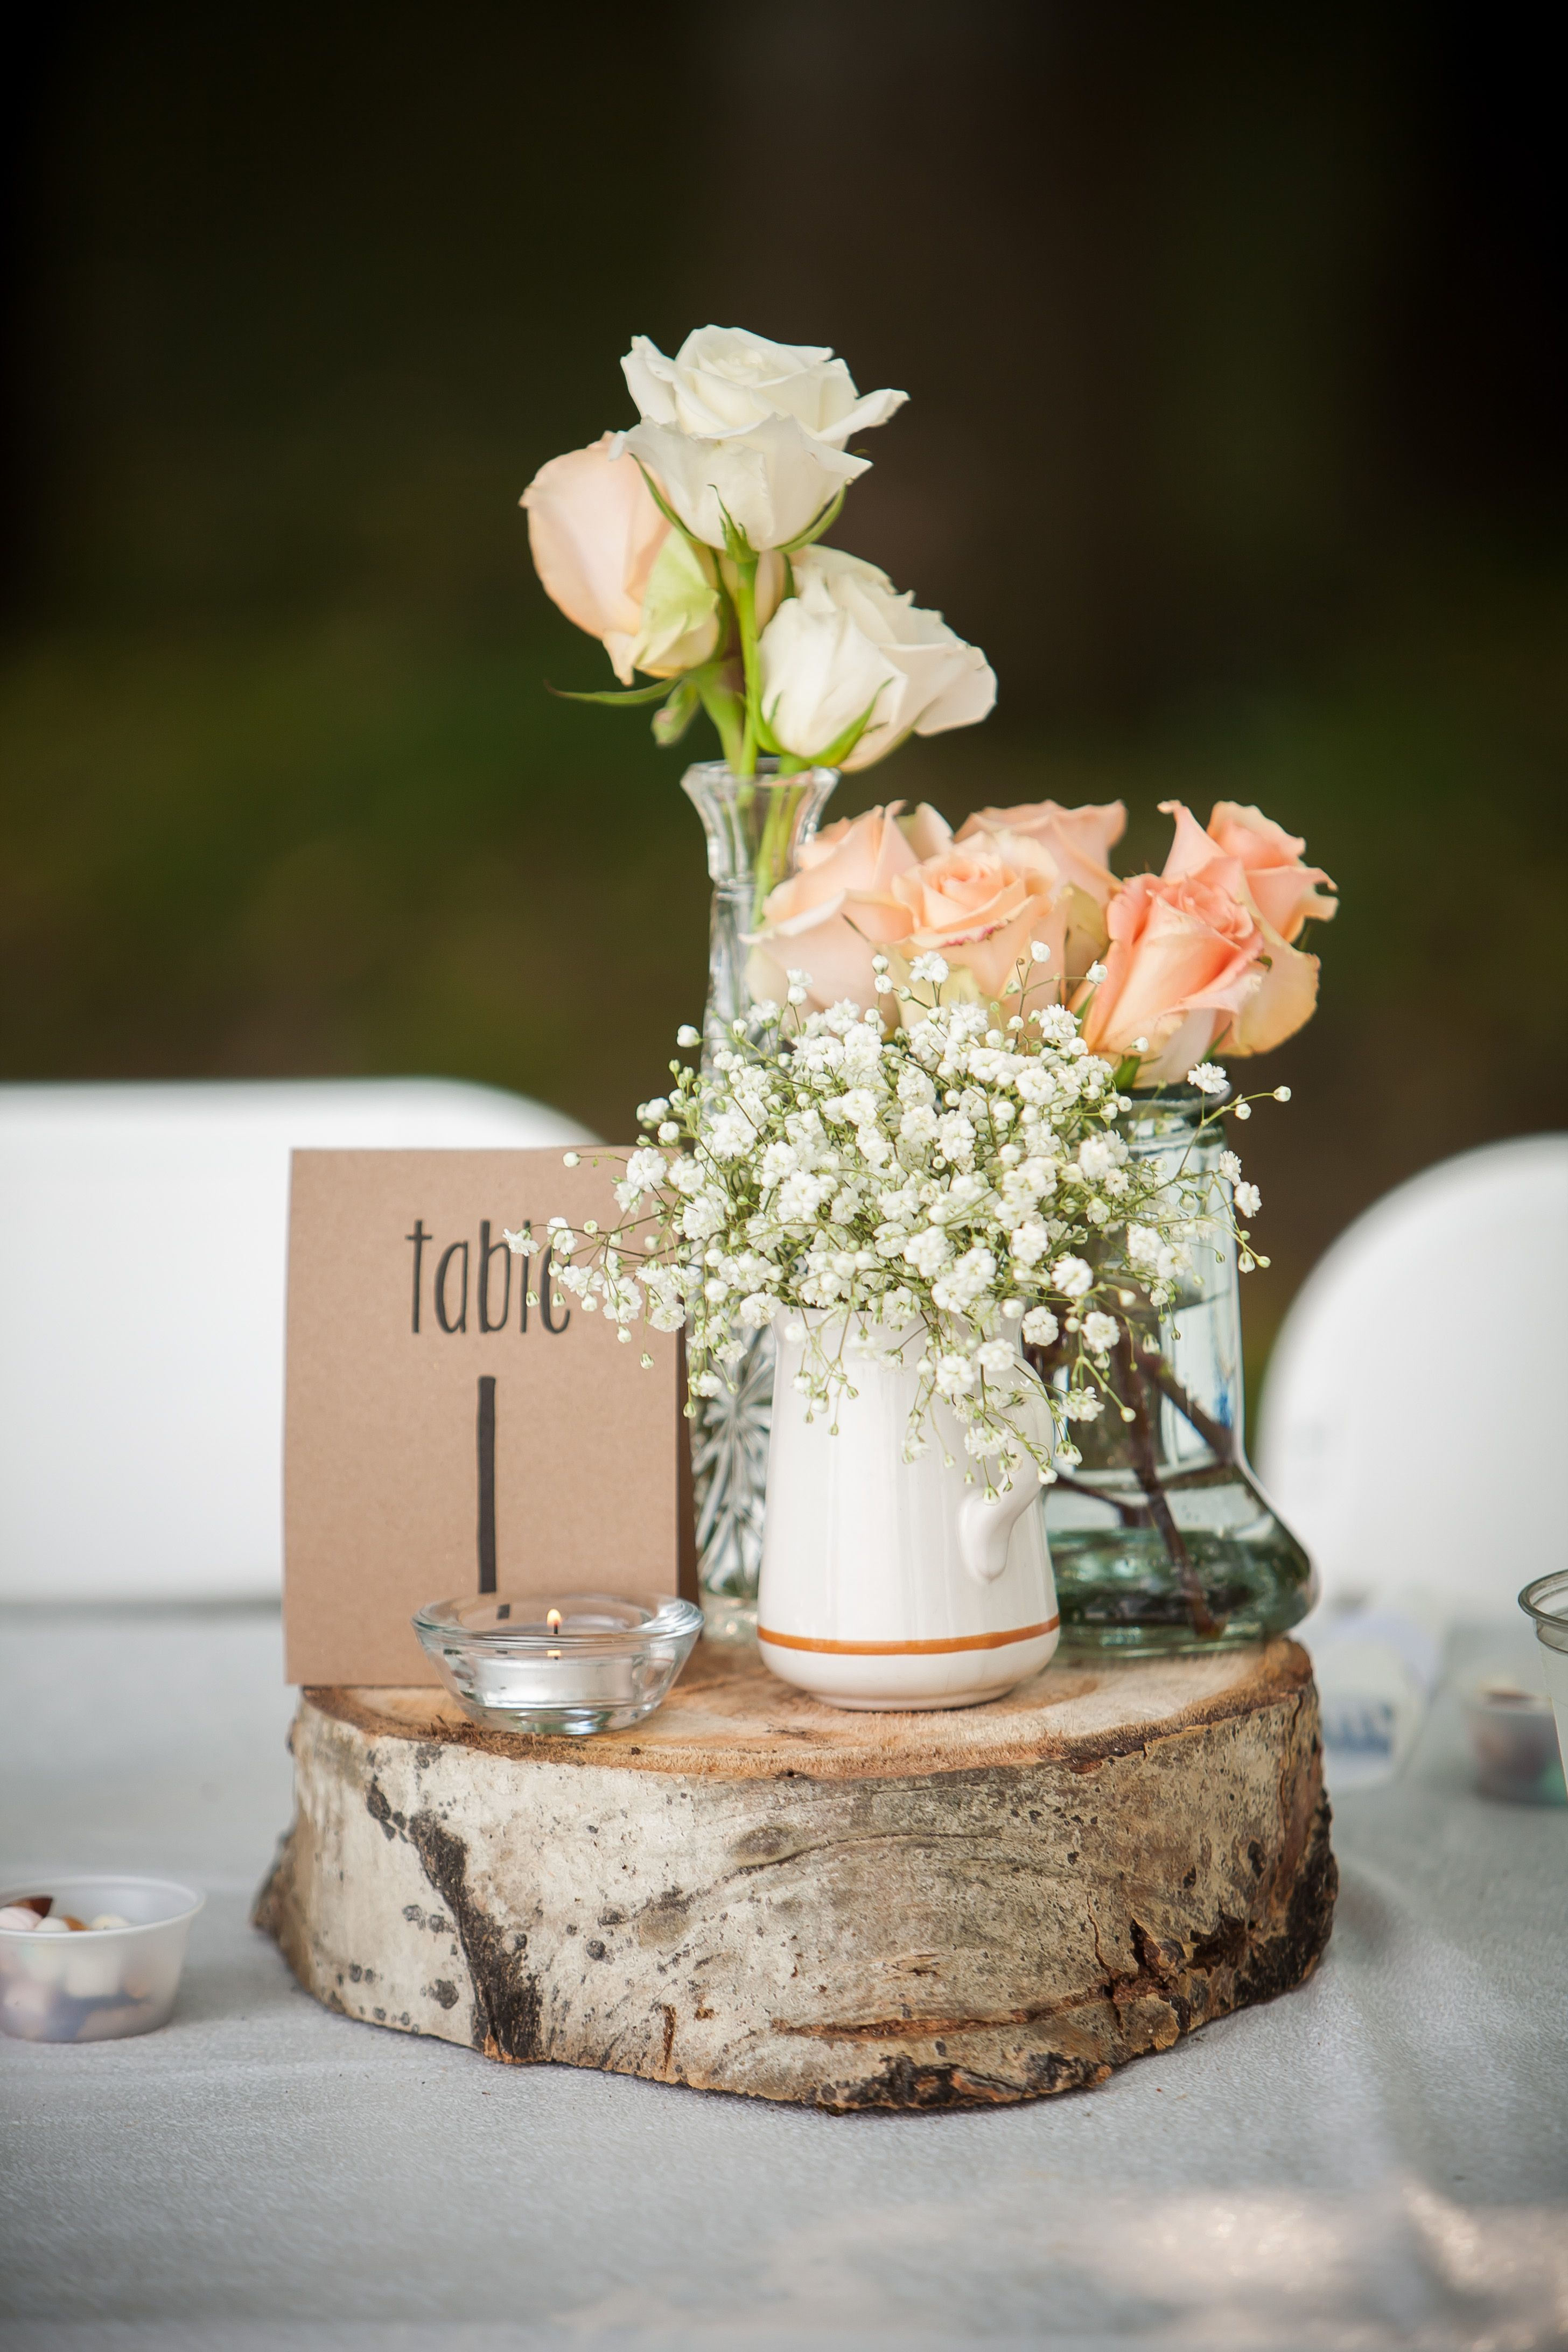 Flower And Table Number On Wood Slab Wood Slab Wood Centerpieces Wood Slab Centerpiece